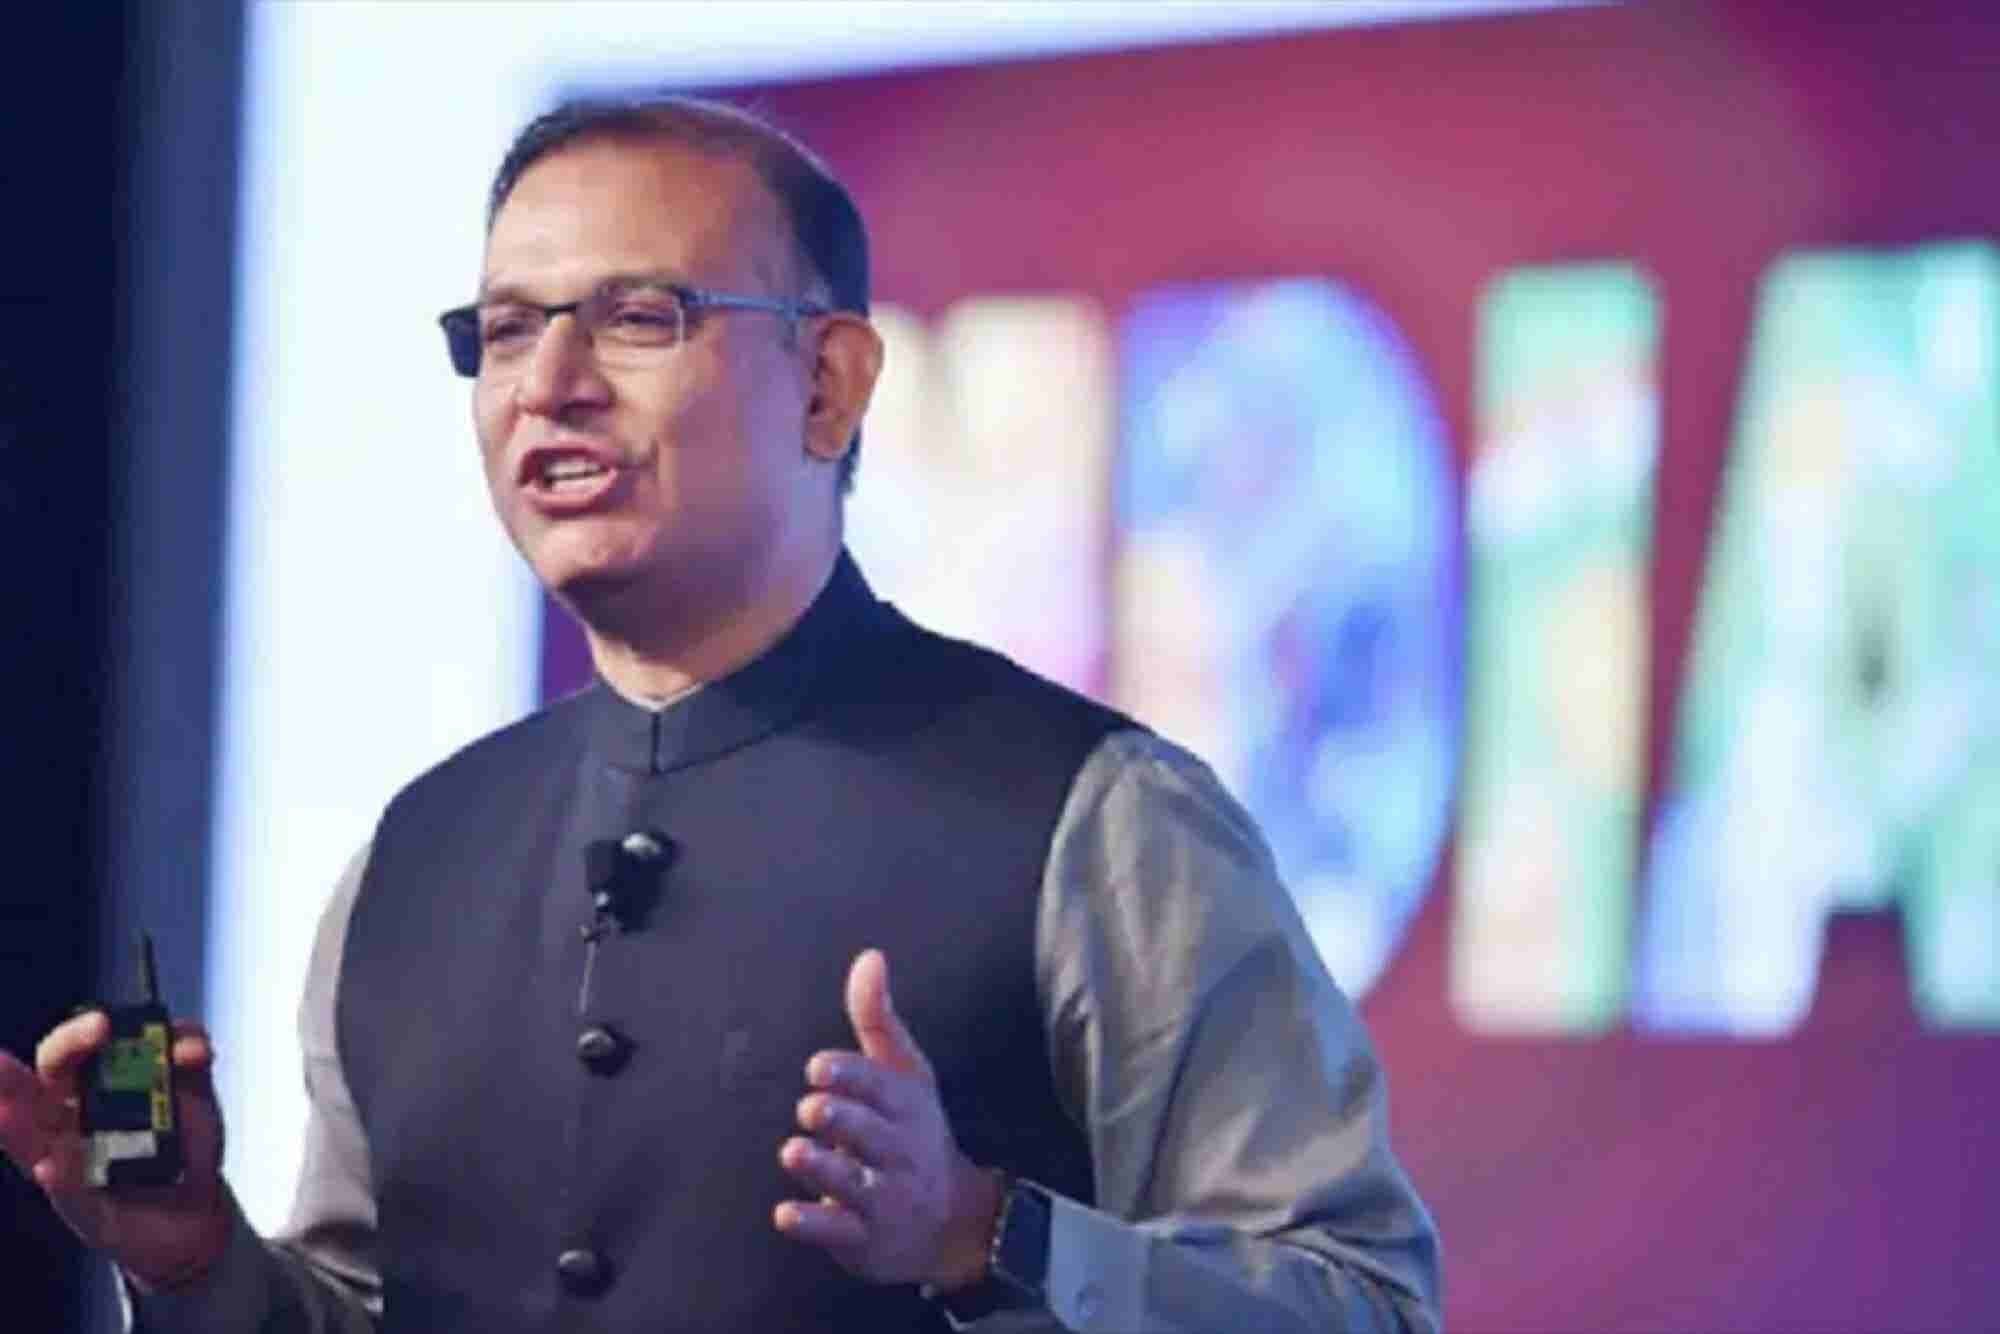 Beyond Unicorns: To Build A $100bn Company We Need To Solve Real India's Problems